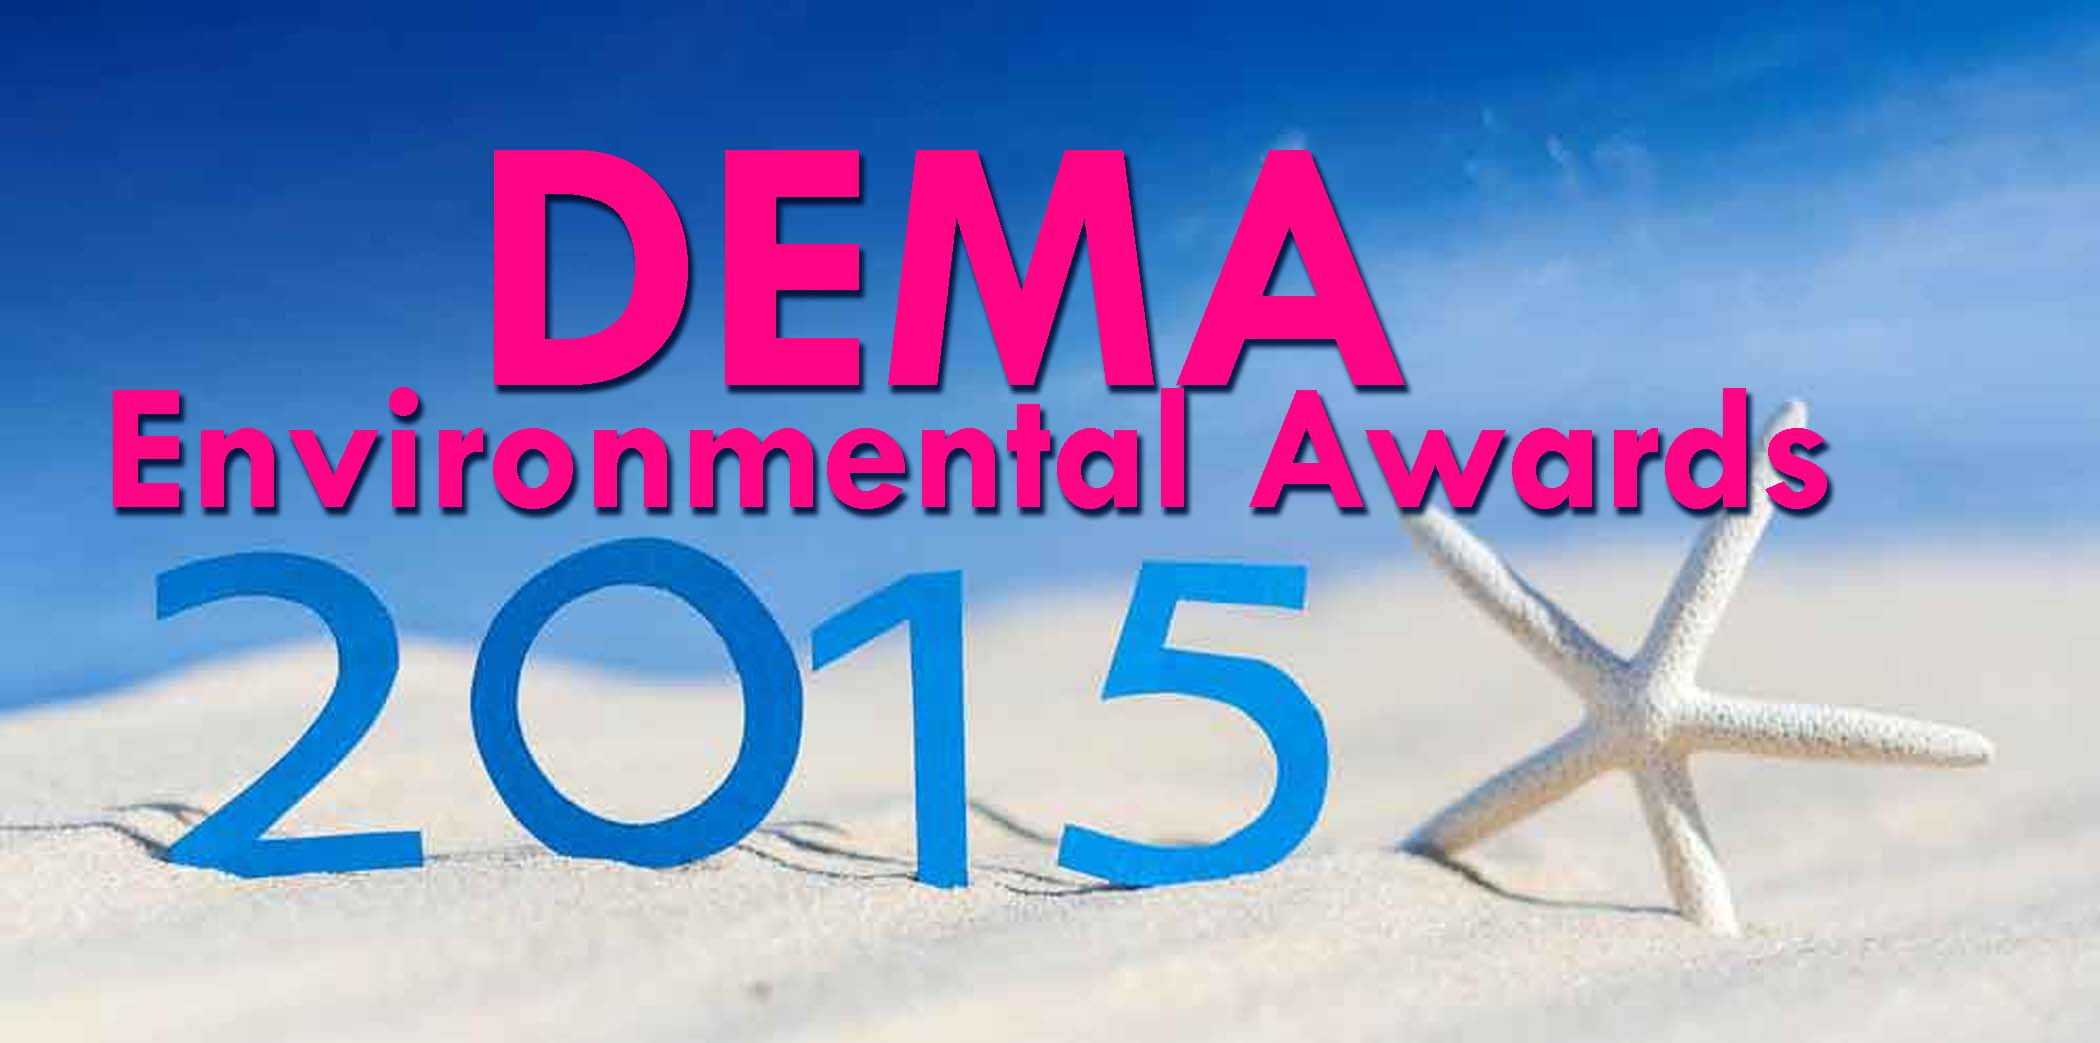 DEMA Awards